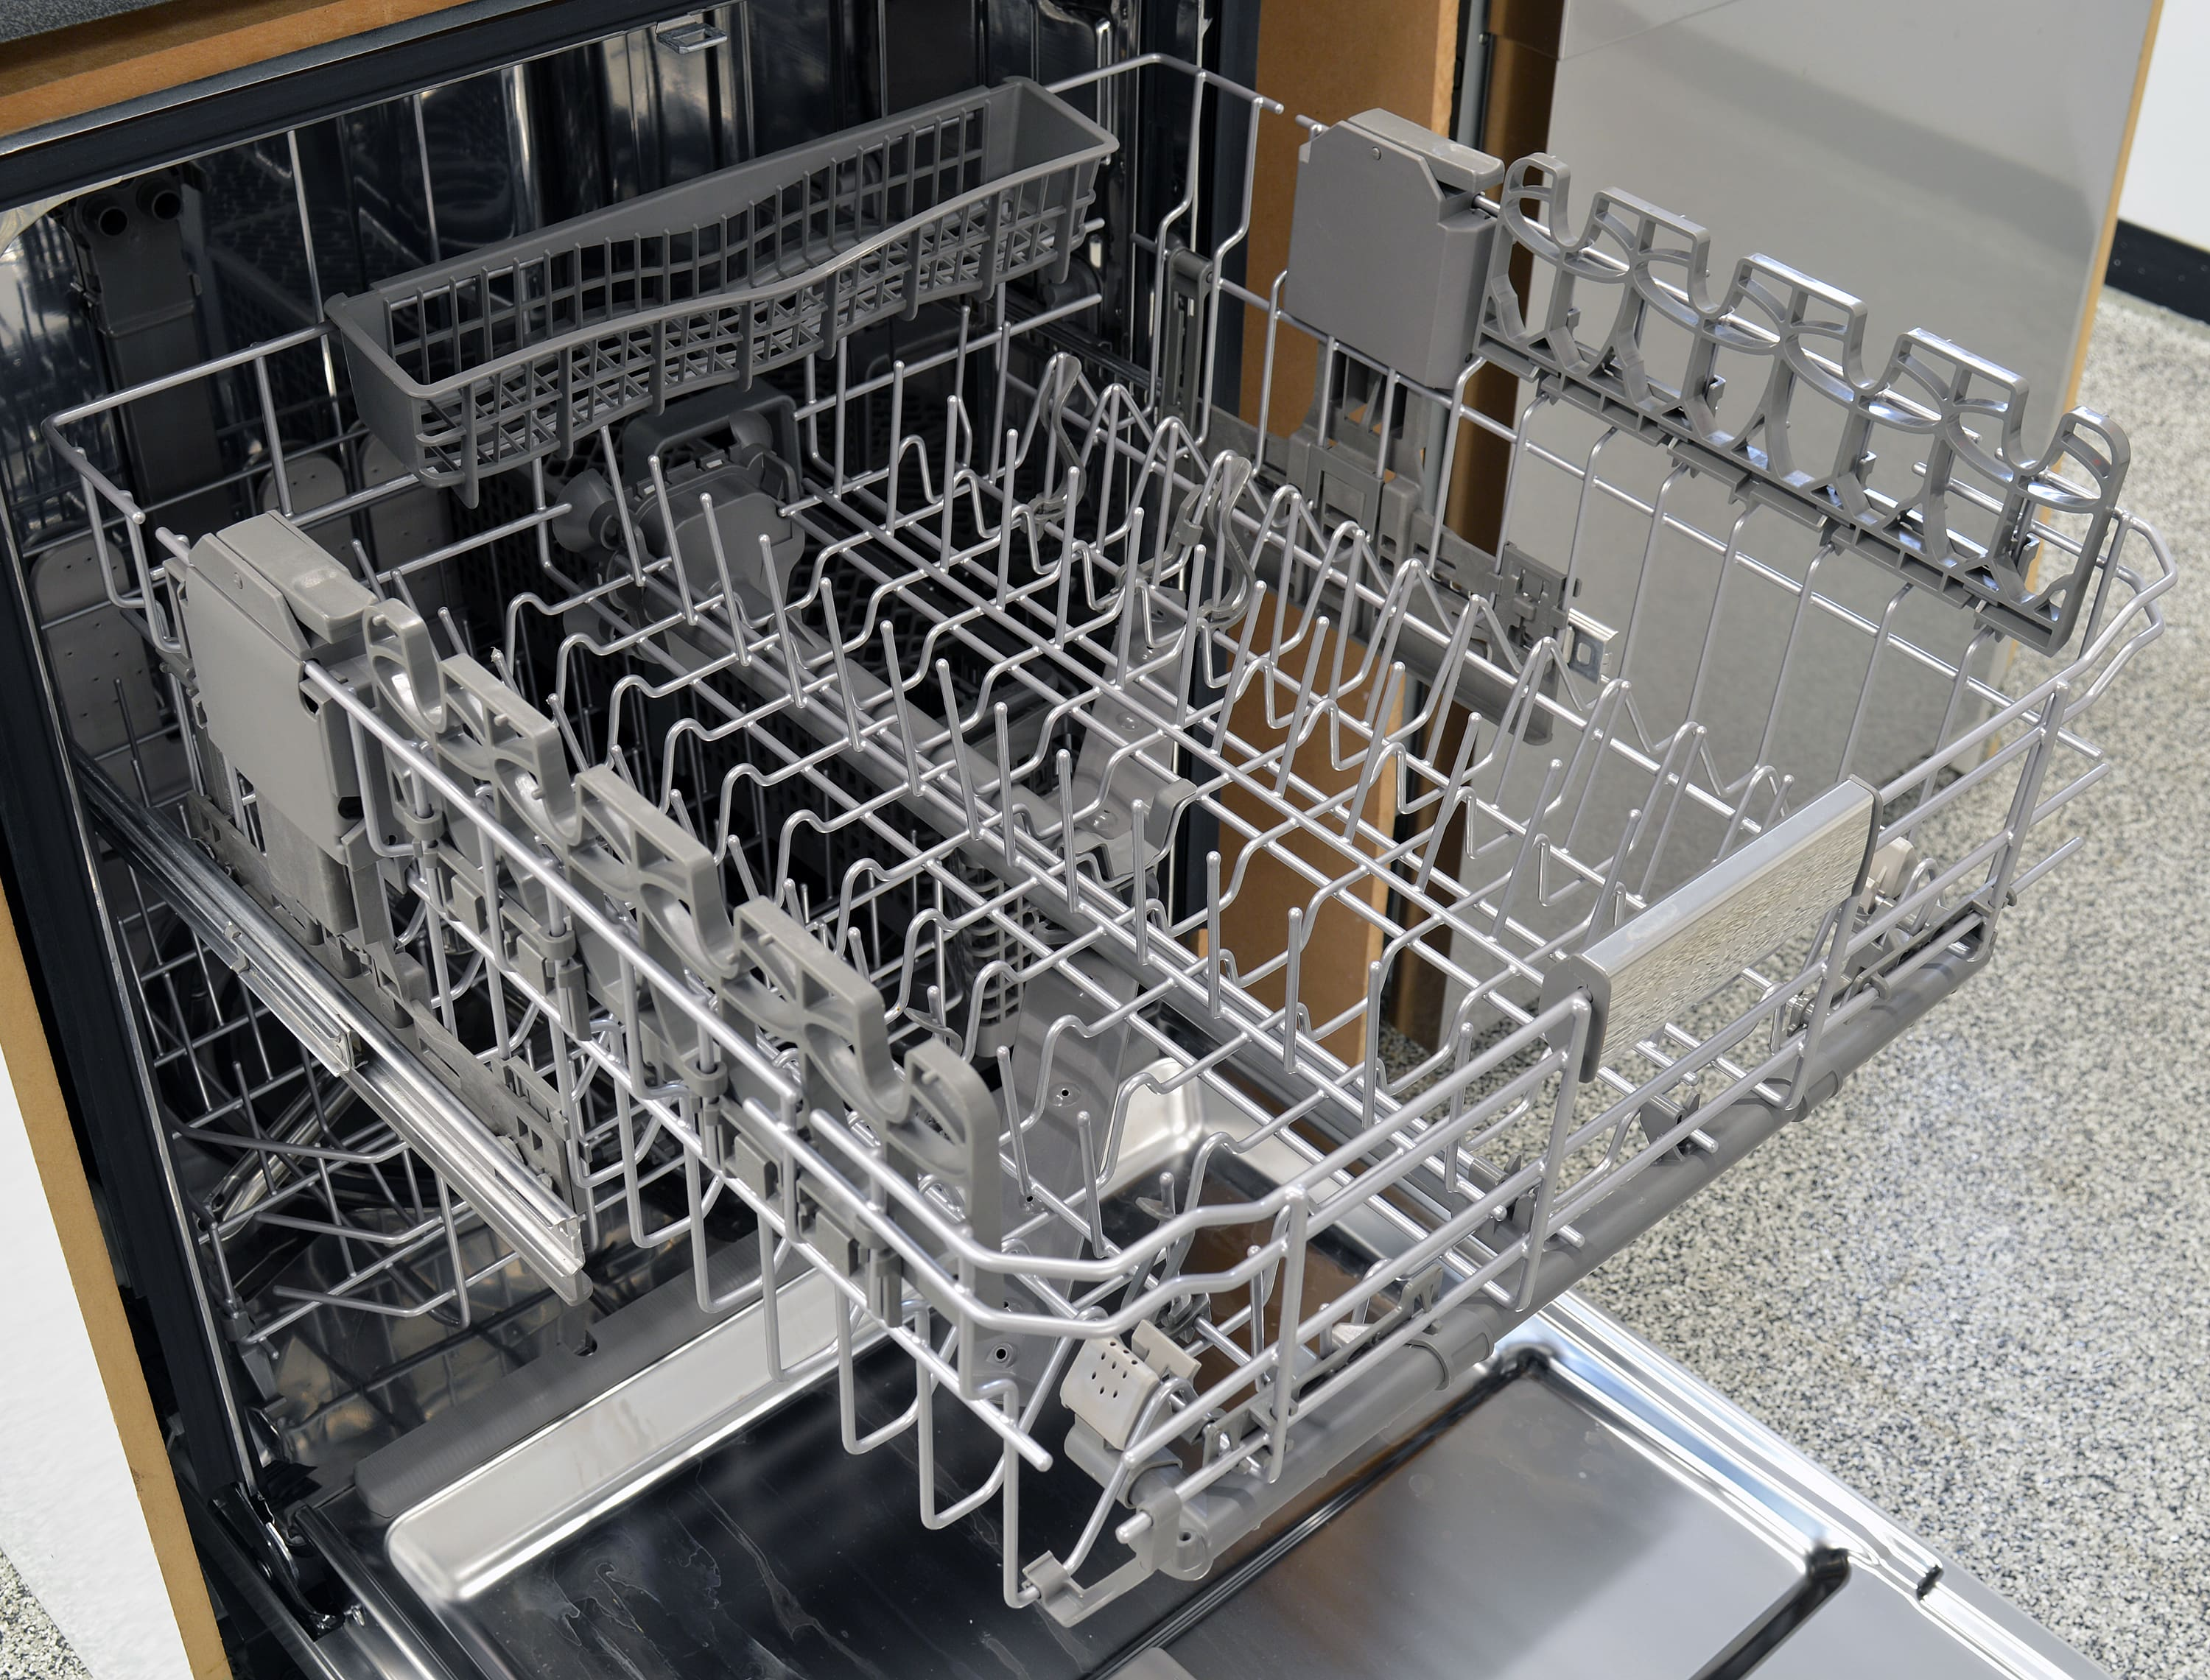 KitchenAid KDTE404DSS upper rack